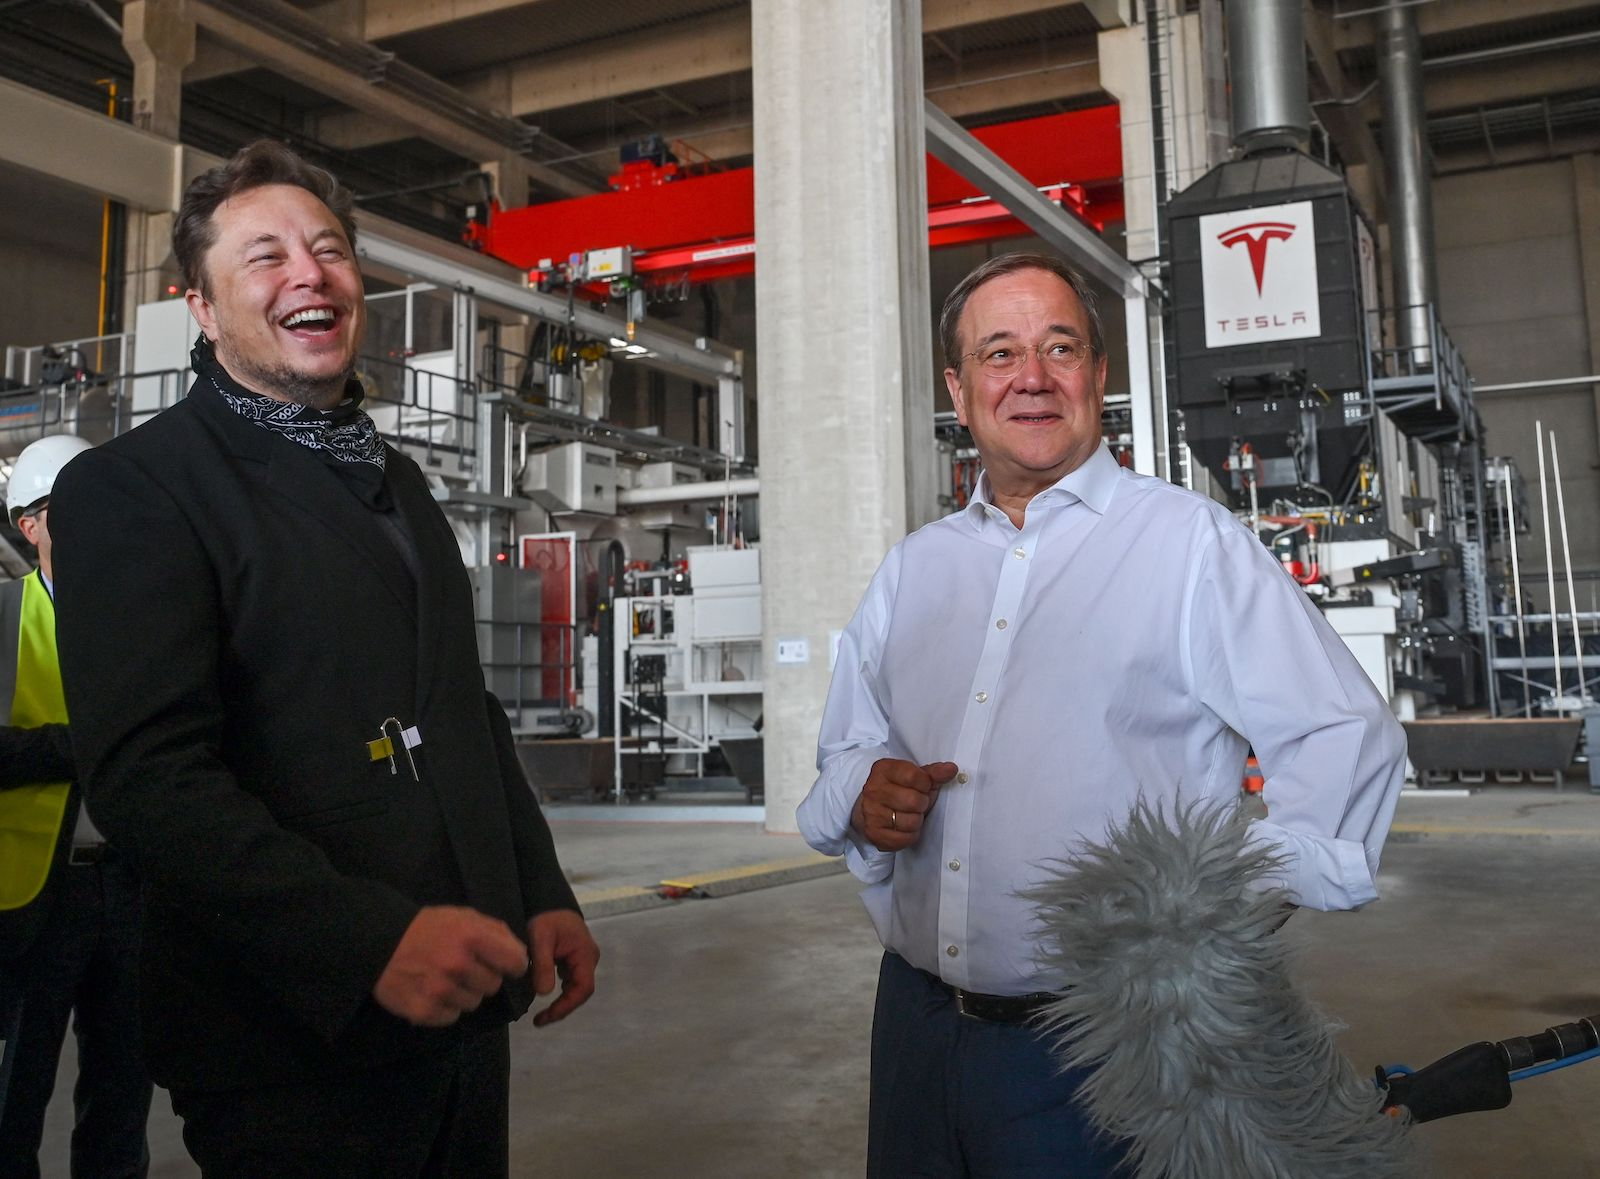 North Rhine-Westphalia's State Premier, Christian Democratic Union (CDU) leader and candidate for Chancellor Armin Laschet (R) and US entrepreneur and business magnate Elon Musk visit the future foundry of the Tesla Gigafactory plant under construction, on August 13, 2021 in Gruenheide near Berlin, eastern Germany. (Photo by Patrick Pleul / POOL / AFP) (Photo by PATRICK PLEUL/POOL/AFP via Getty Images)